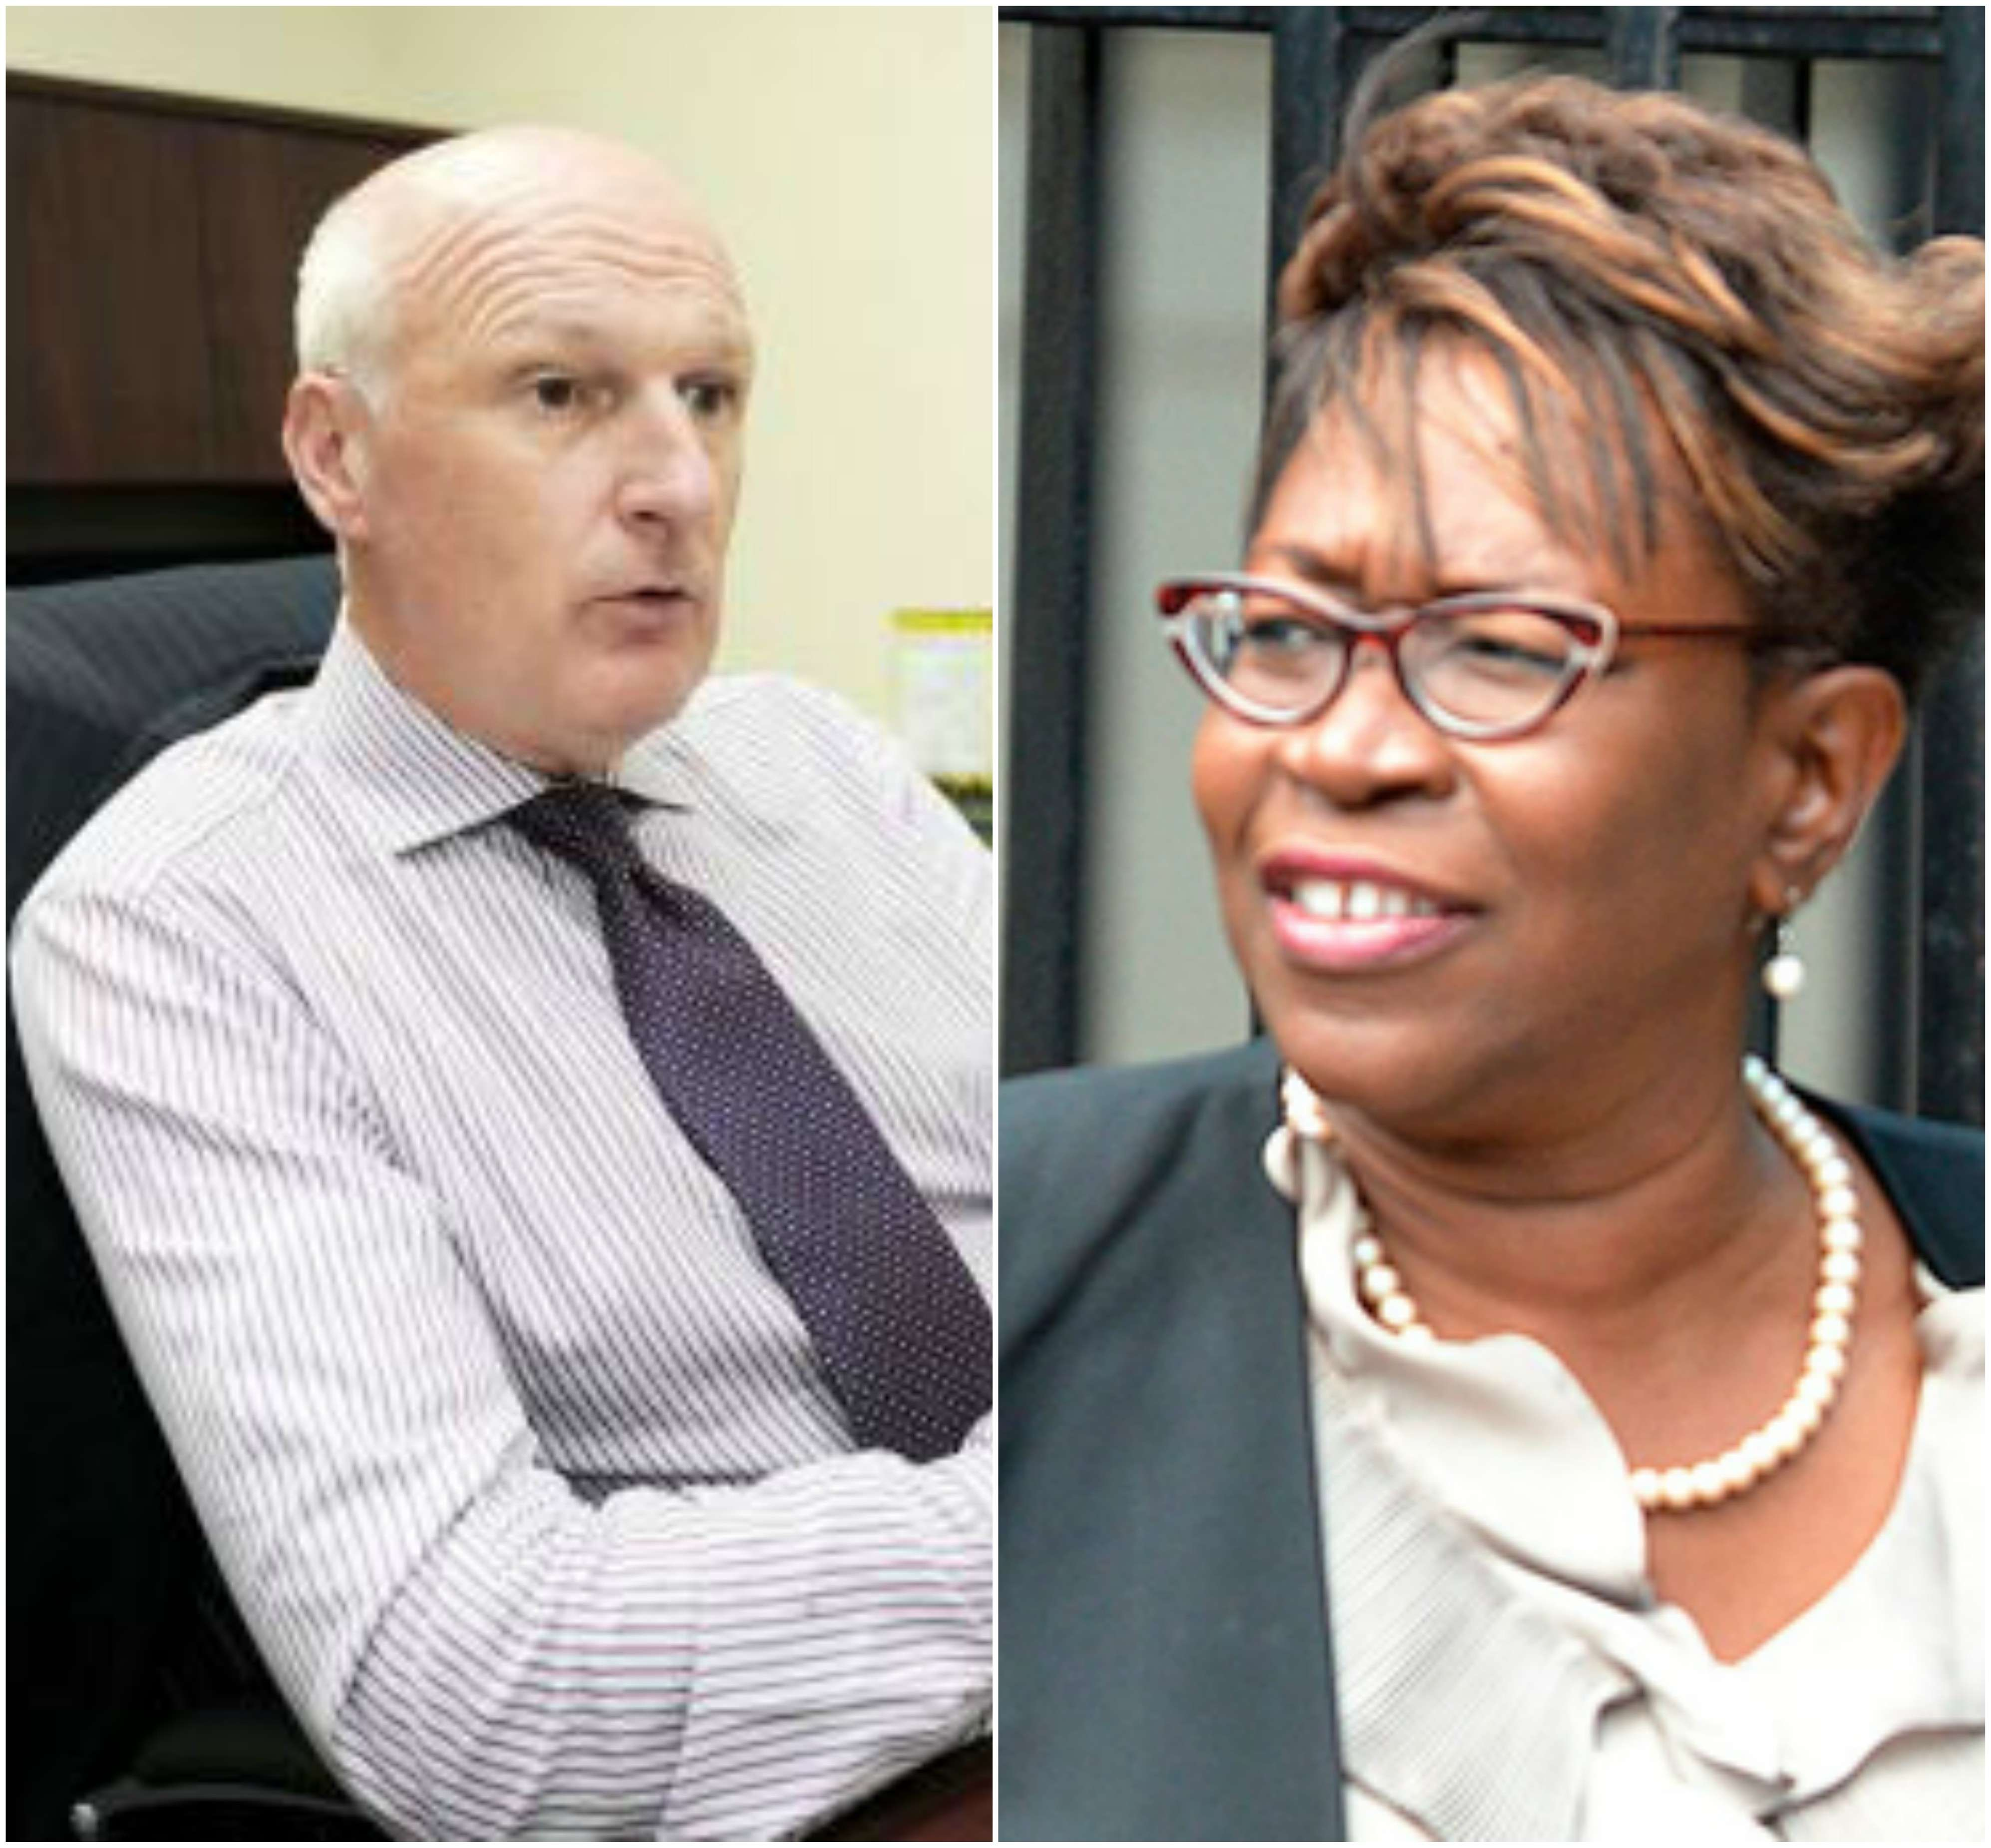 Green Challenges DPP's Account of Controversial Case